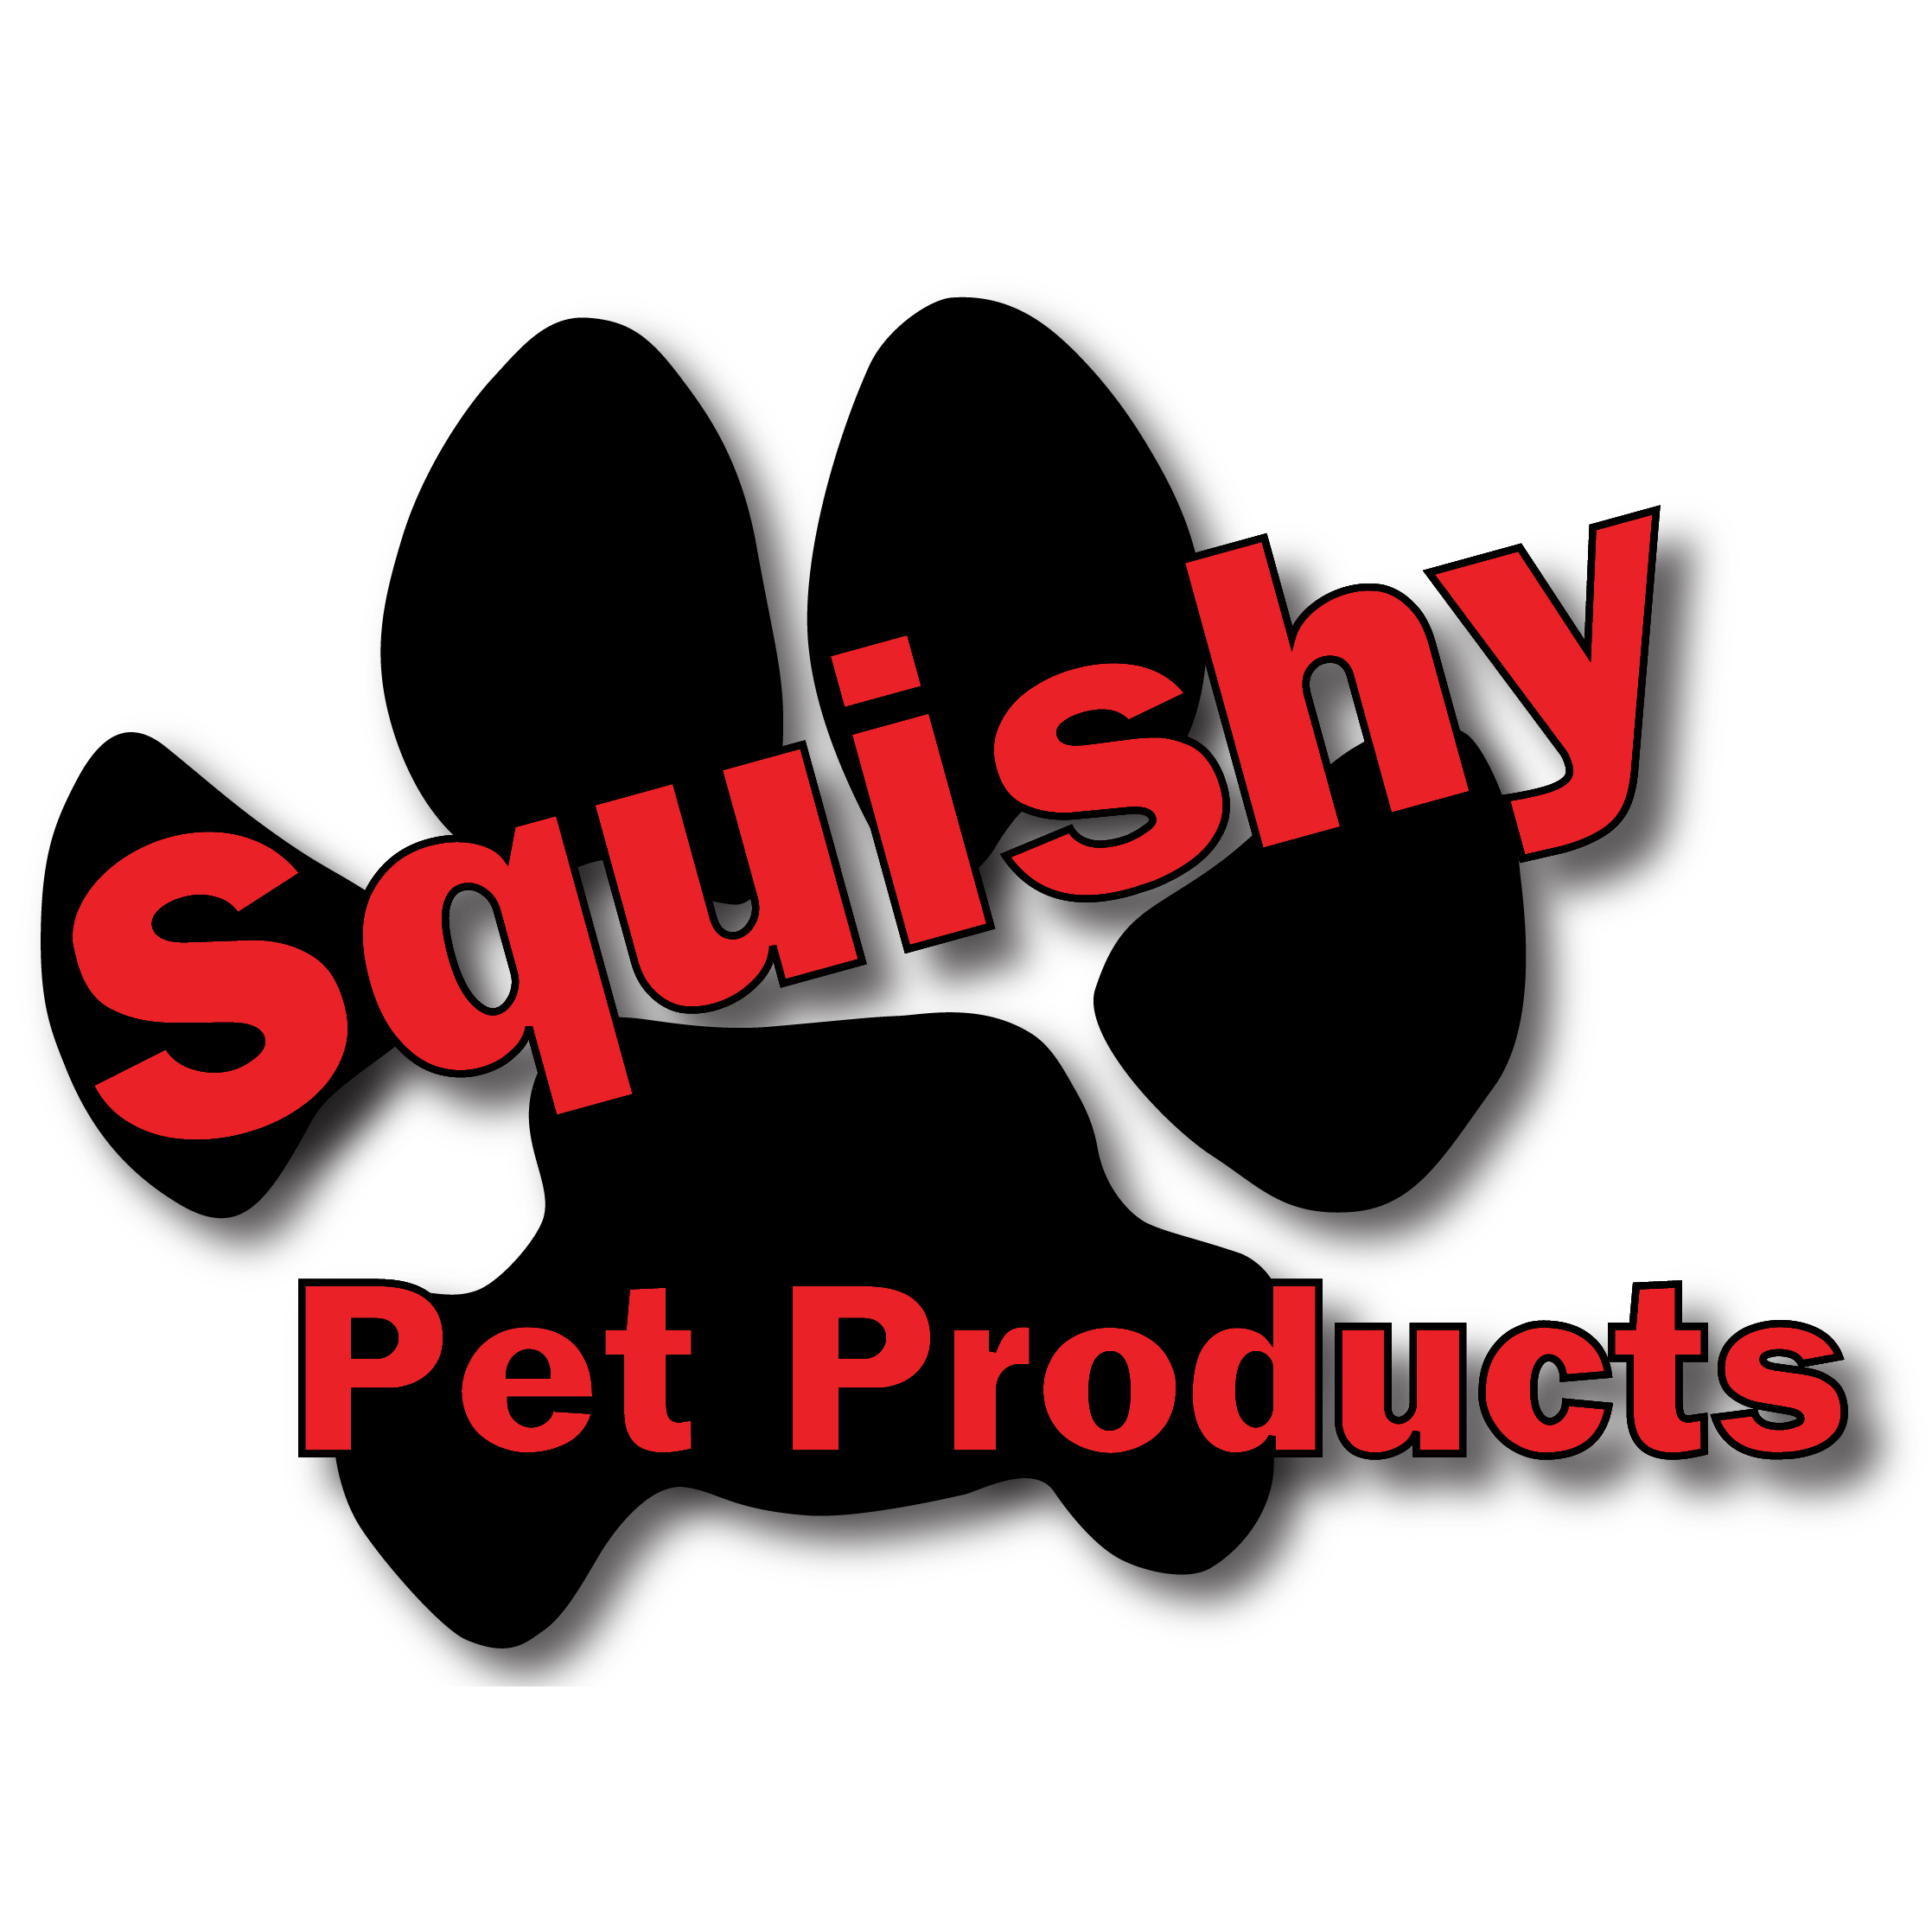 Squishy Pet Products